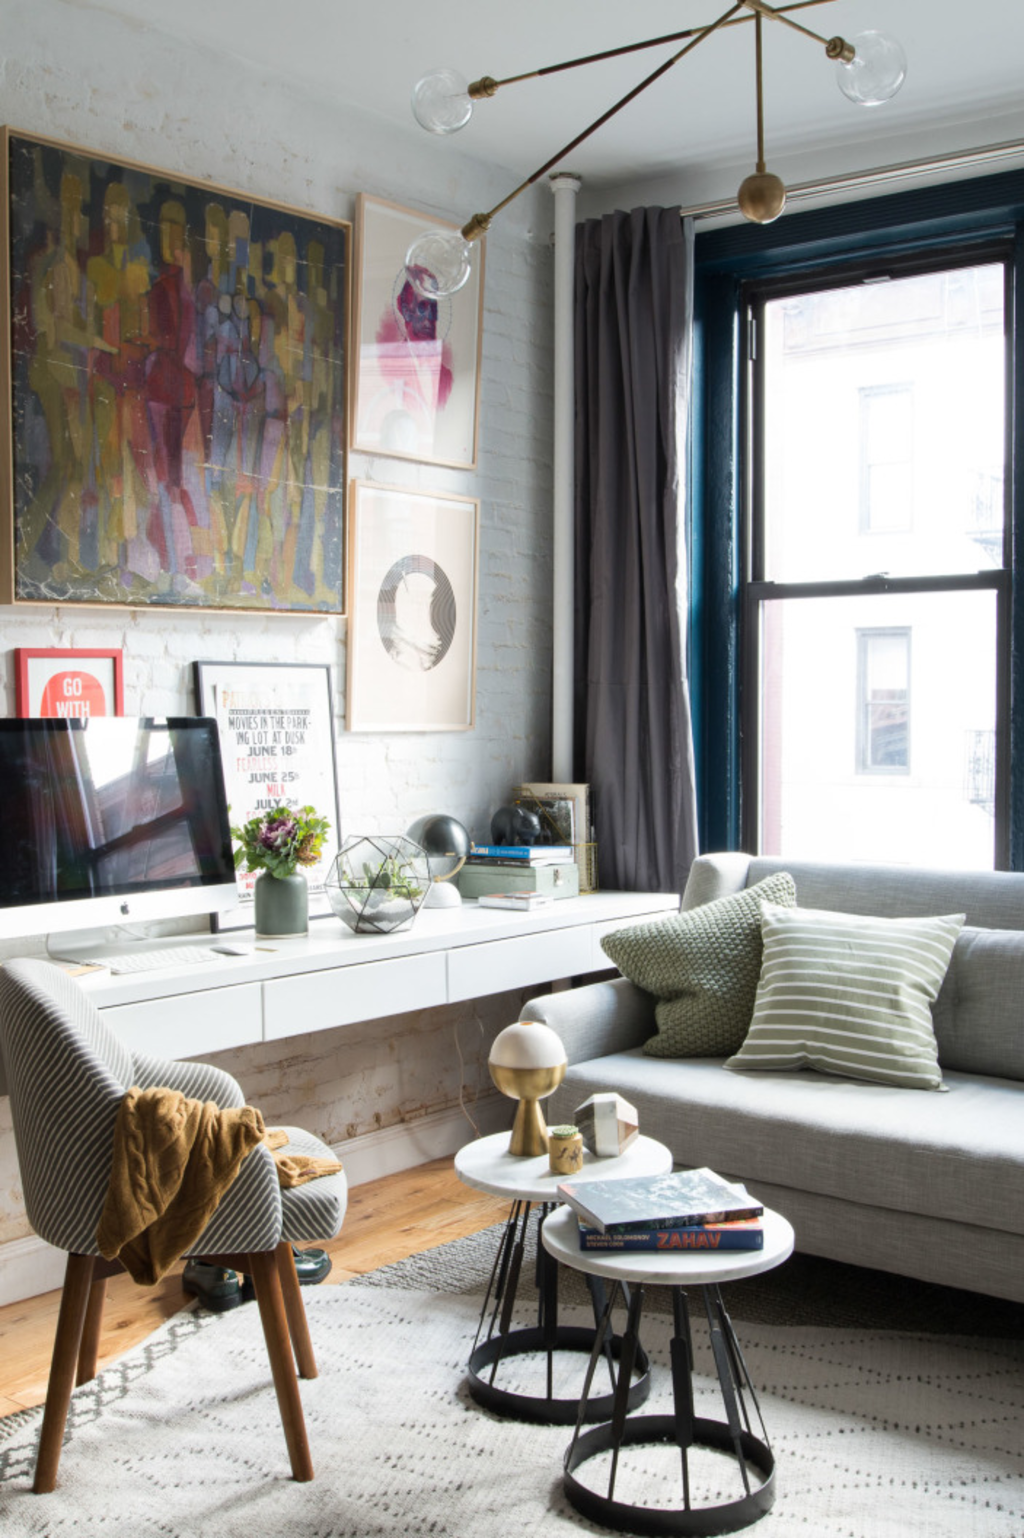 7 Ways to Fit a Workspace into a Small Space